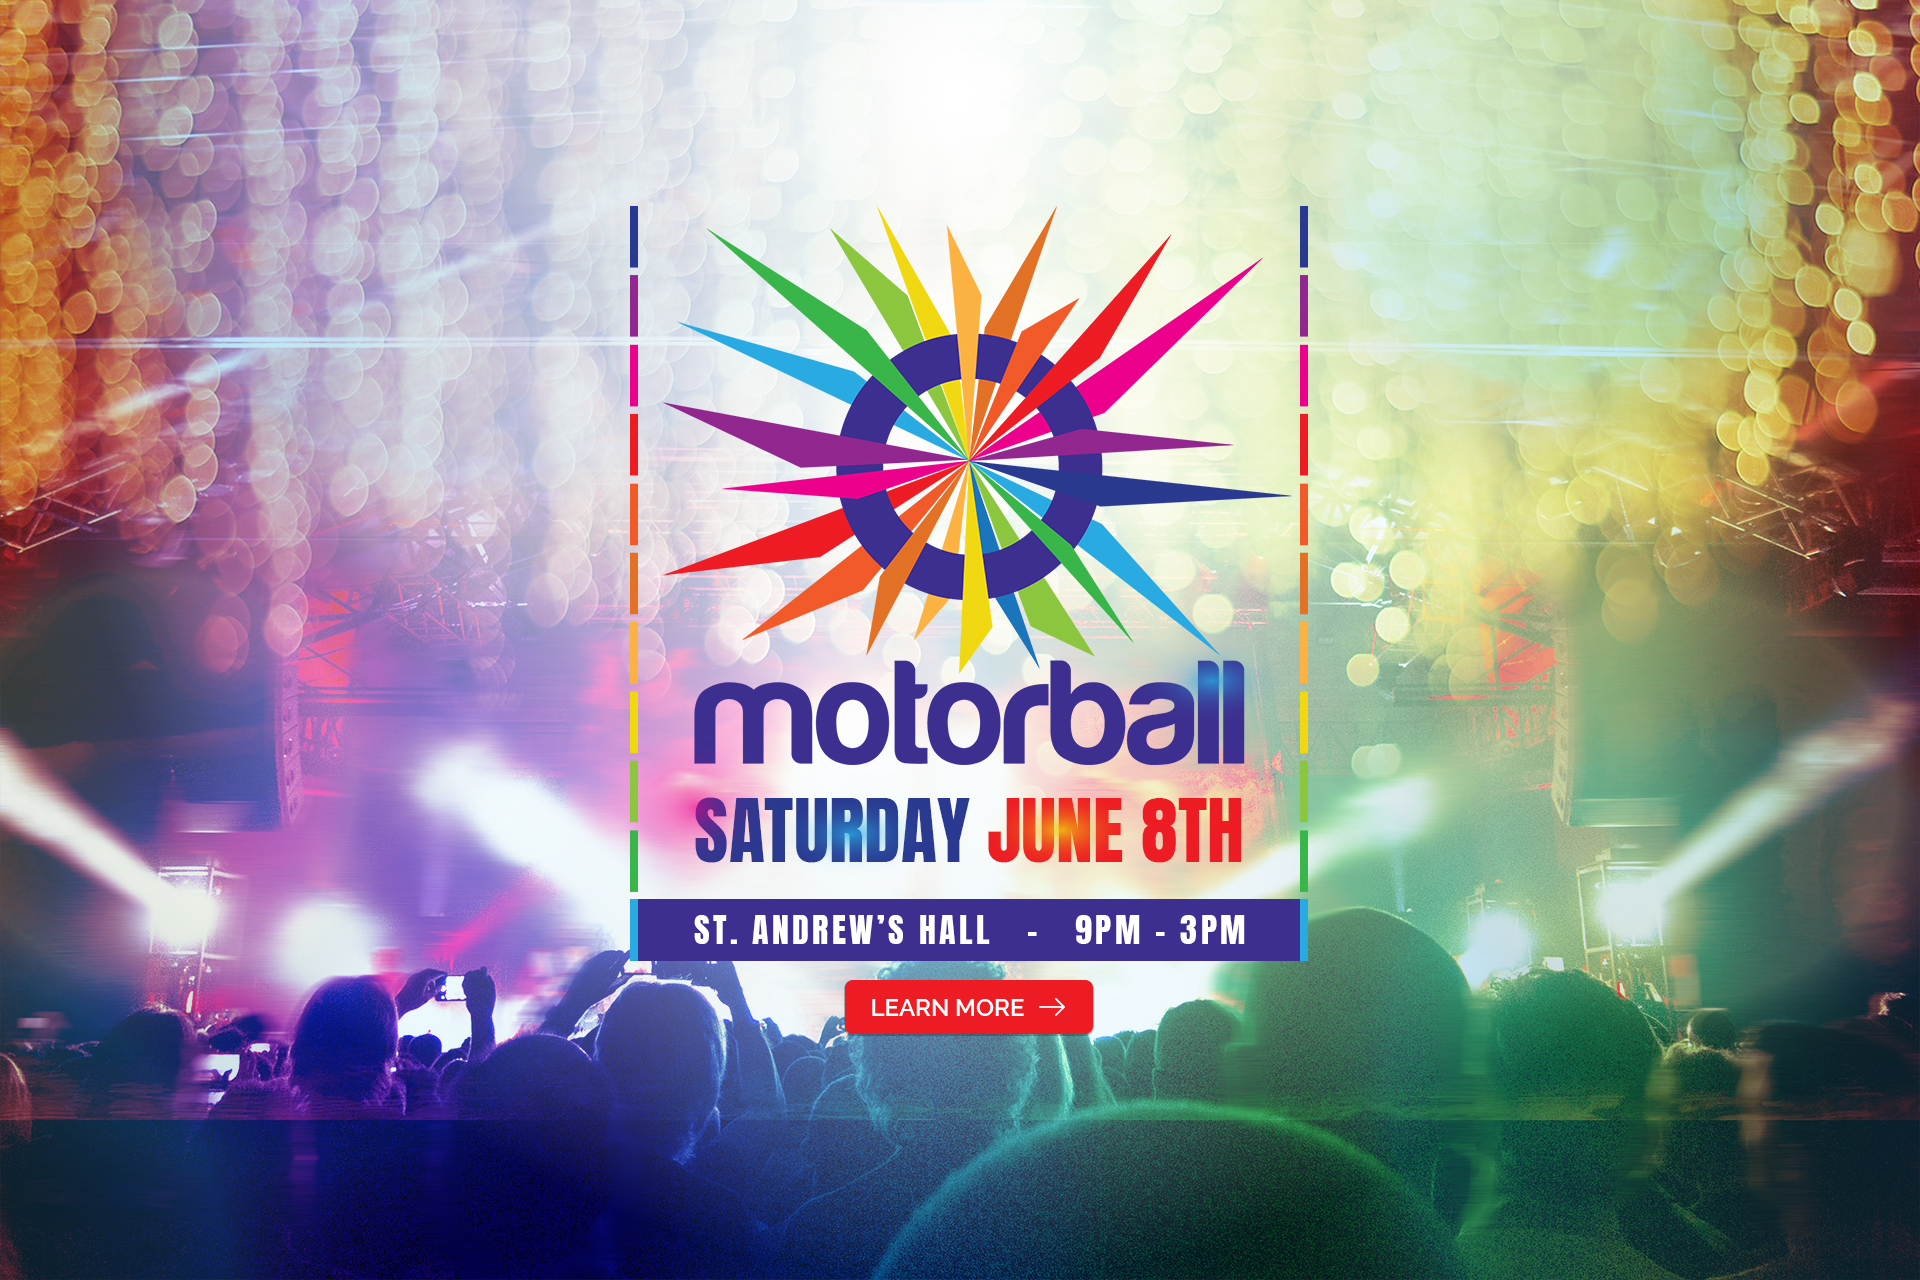 Learn more about Motorball 2019